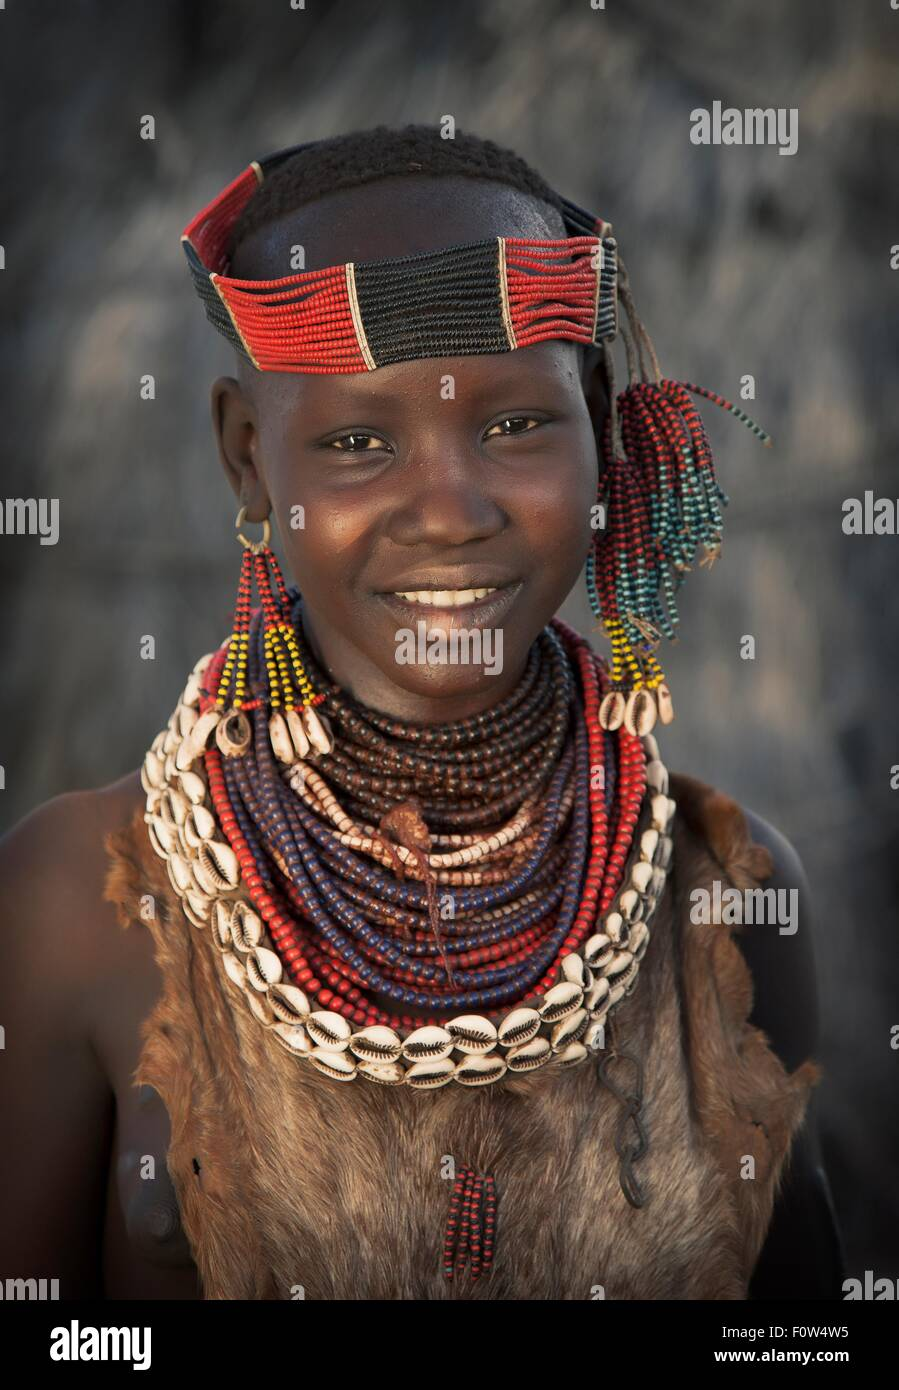 Portrait of girl from Karo tribe wearing traditional costume, Ethiopia, Africa - Stock Image